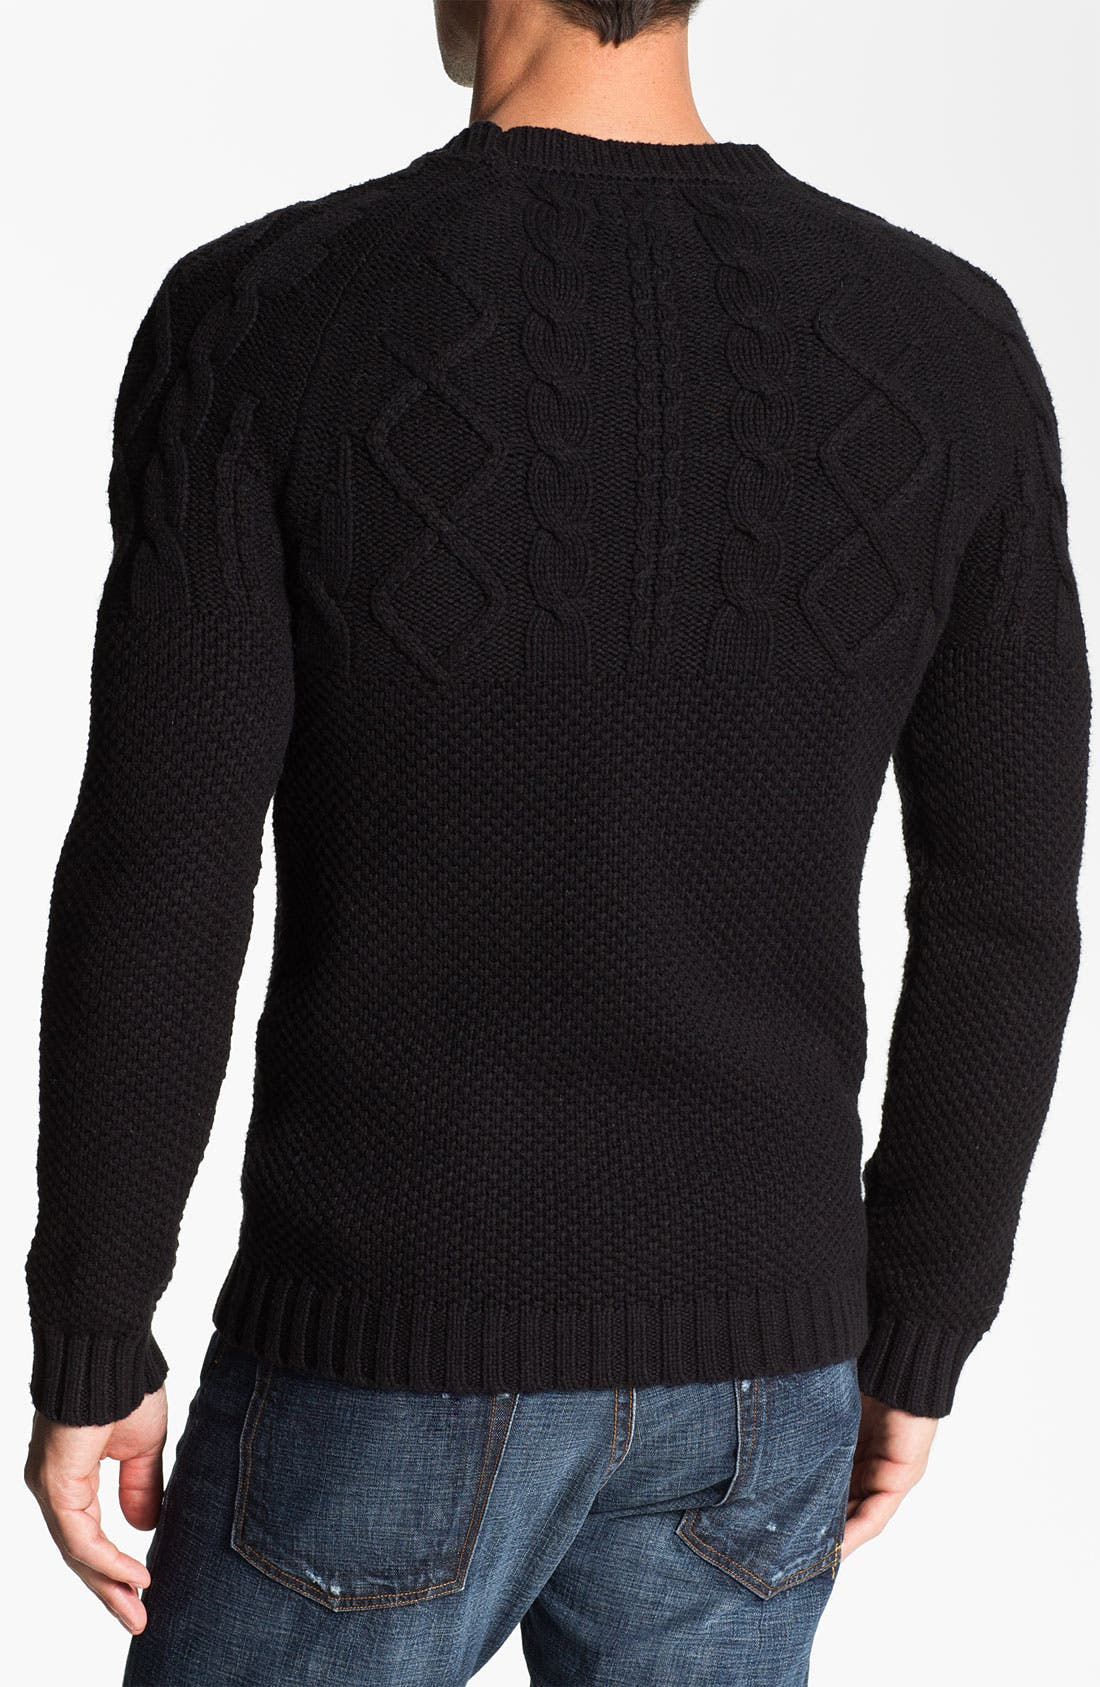 Alternate Image 2  - J.C. Rags Cable Knit Sweater